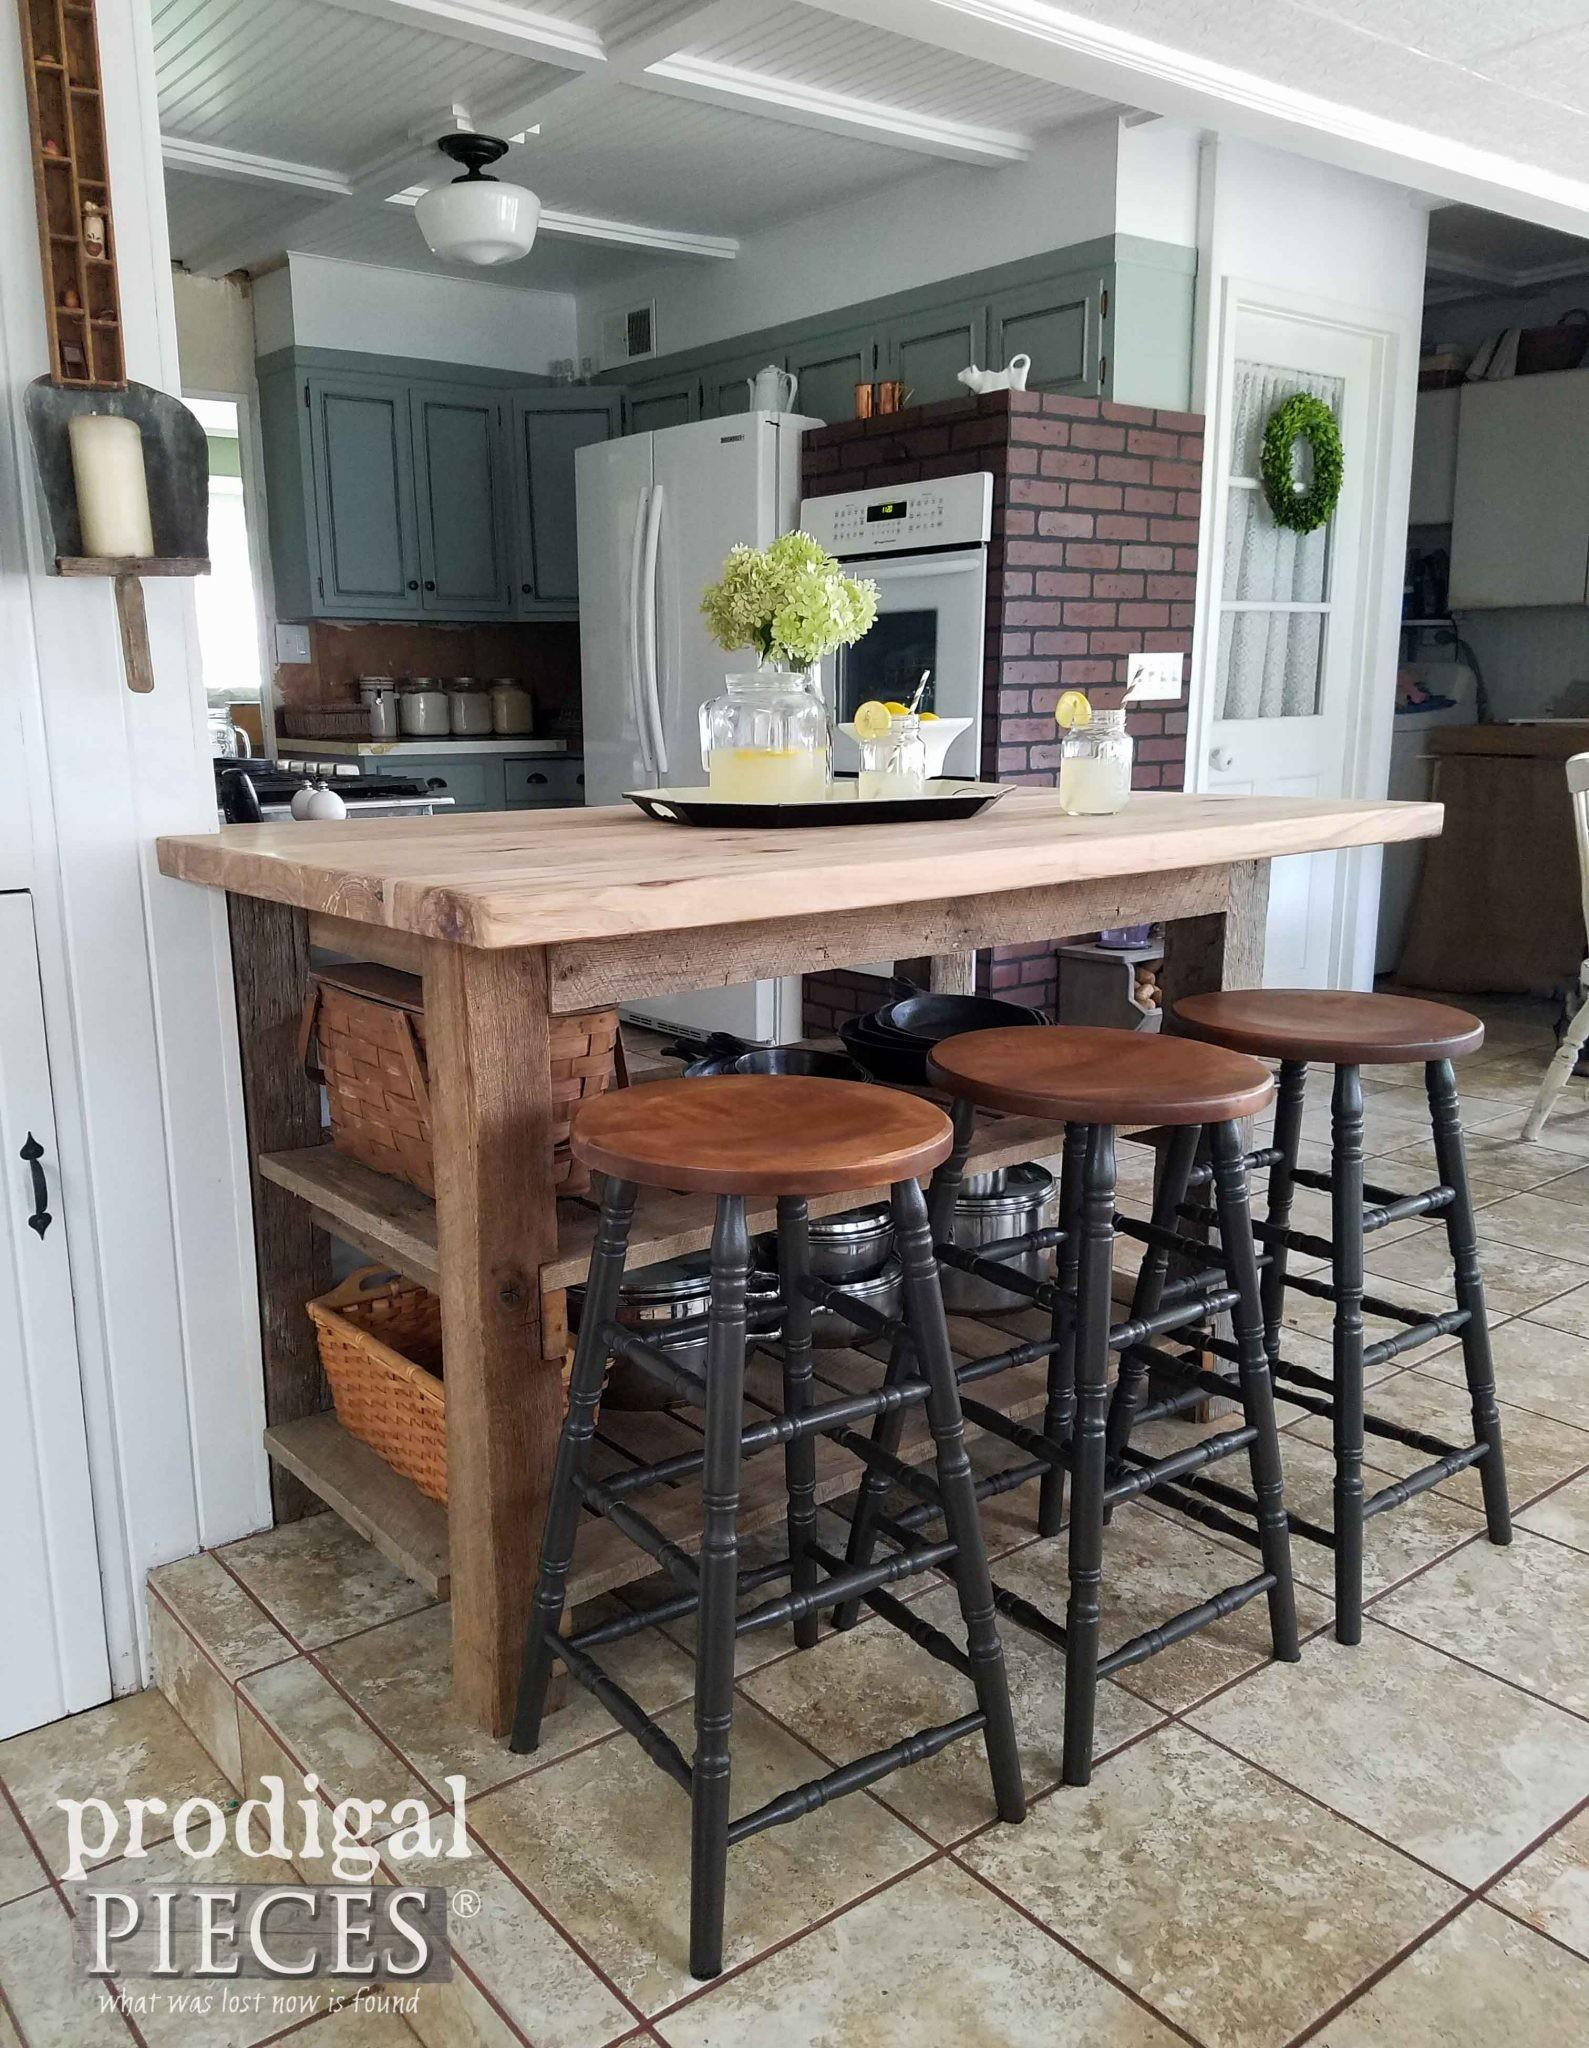 Create Farmhouse Styled Kitchen Making Remodeling Bar